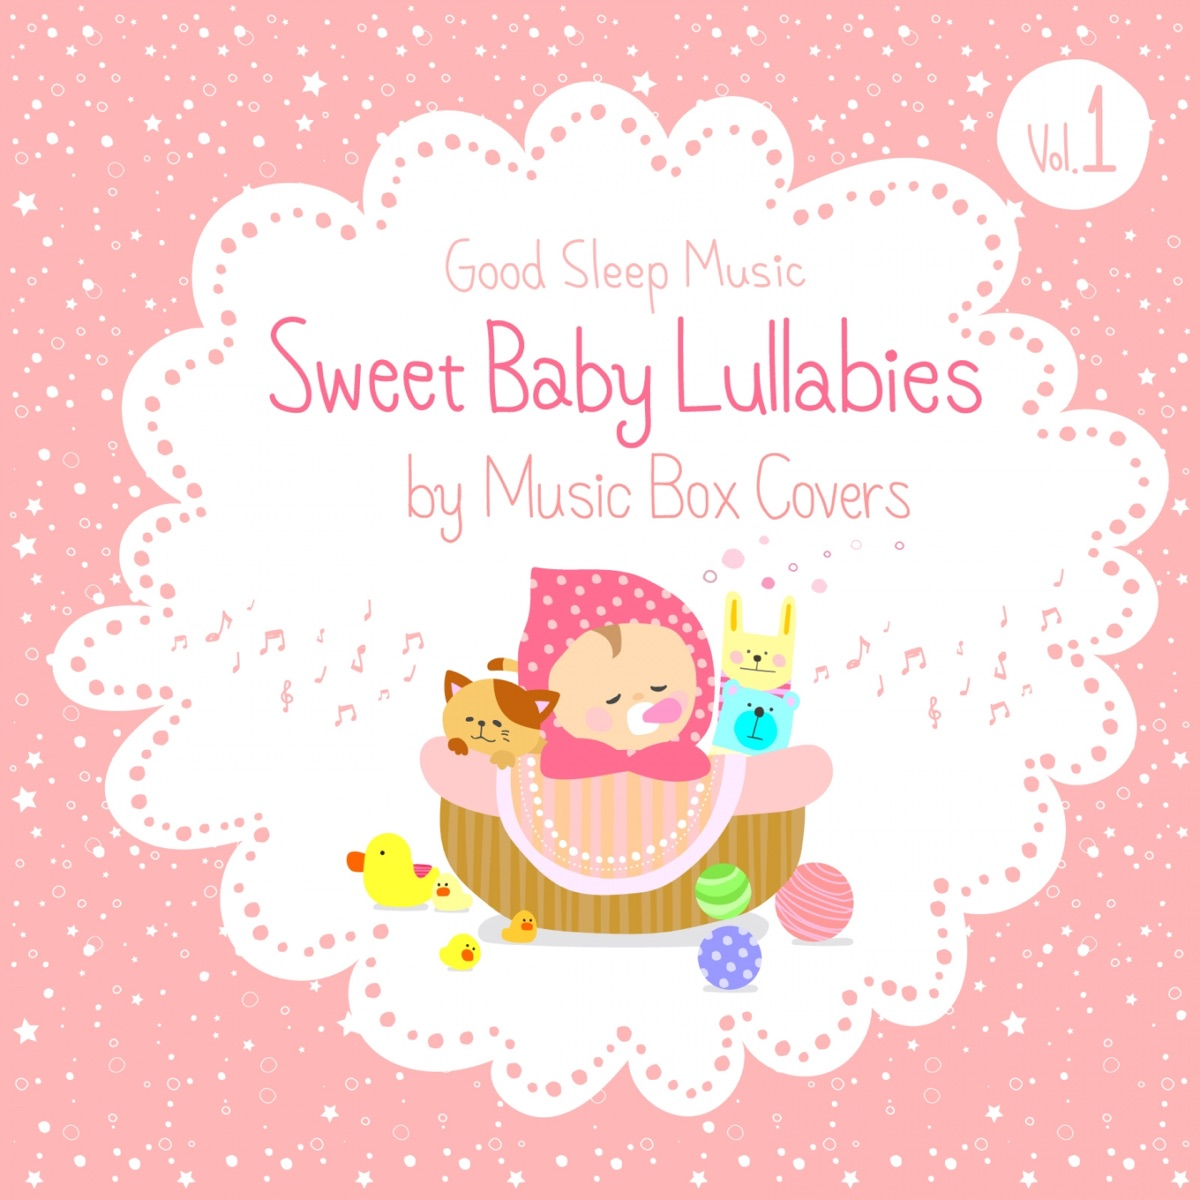 Sweet Baby Lullabies Disneystudio Ghibli And Children Songs Good